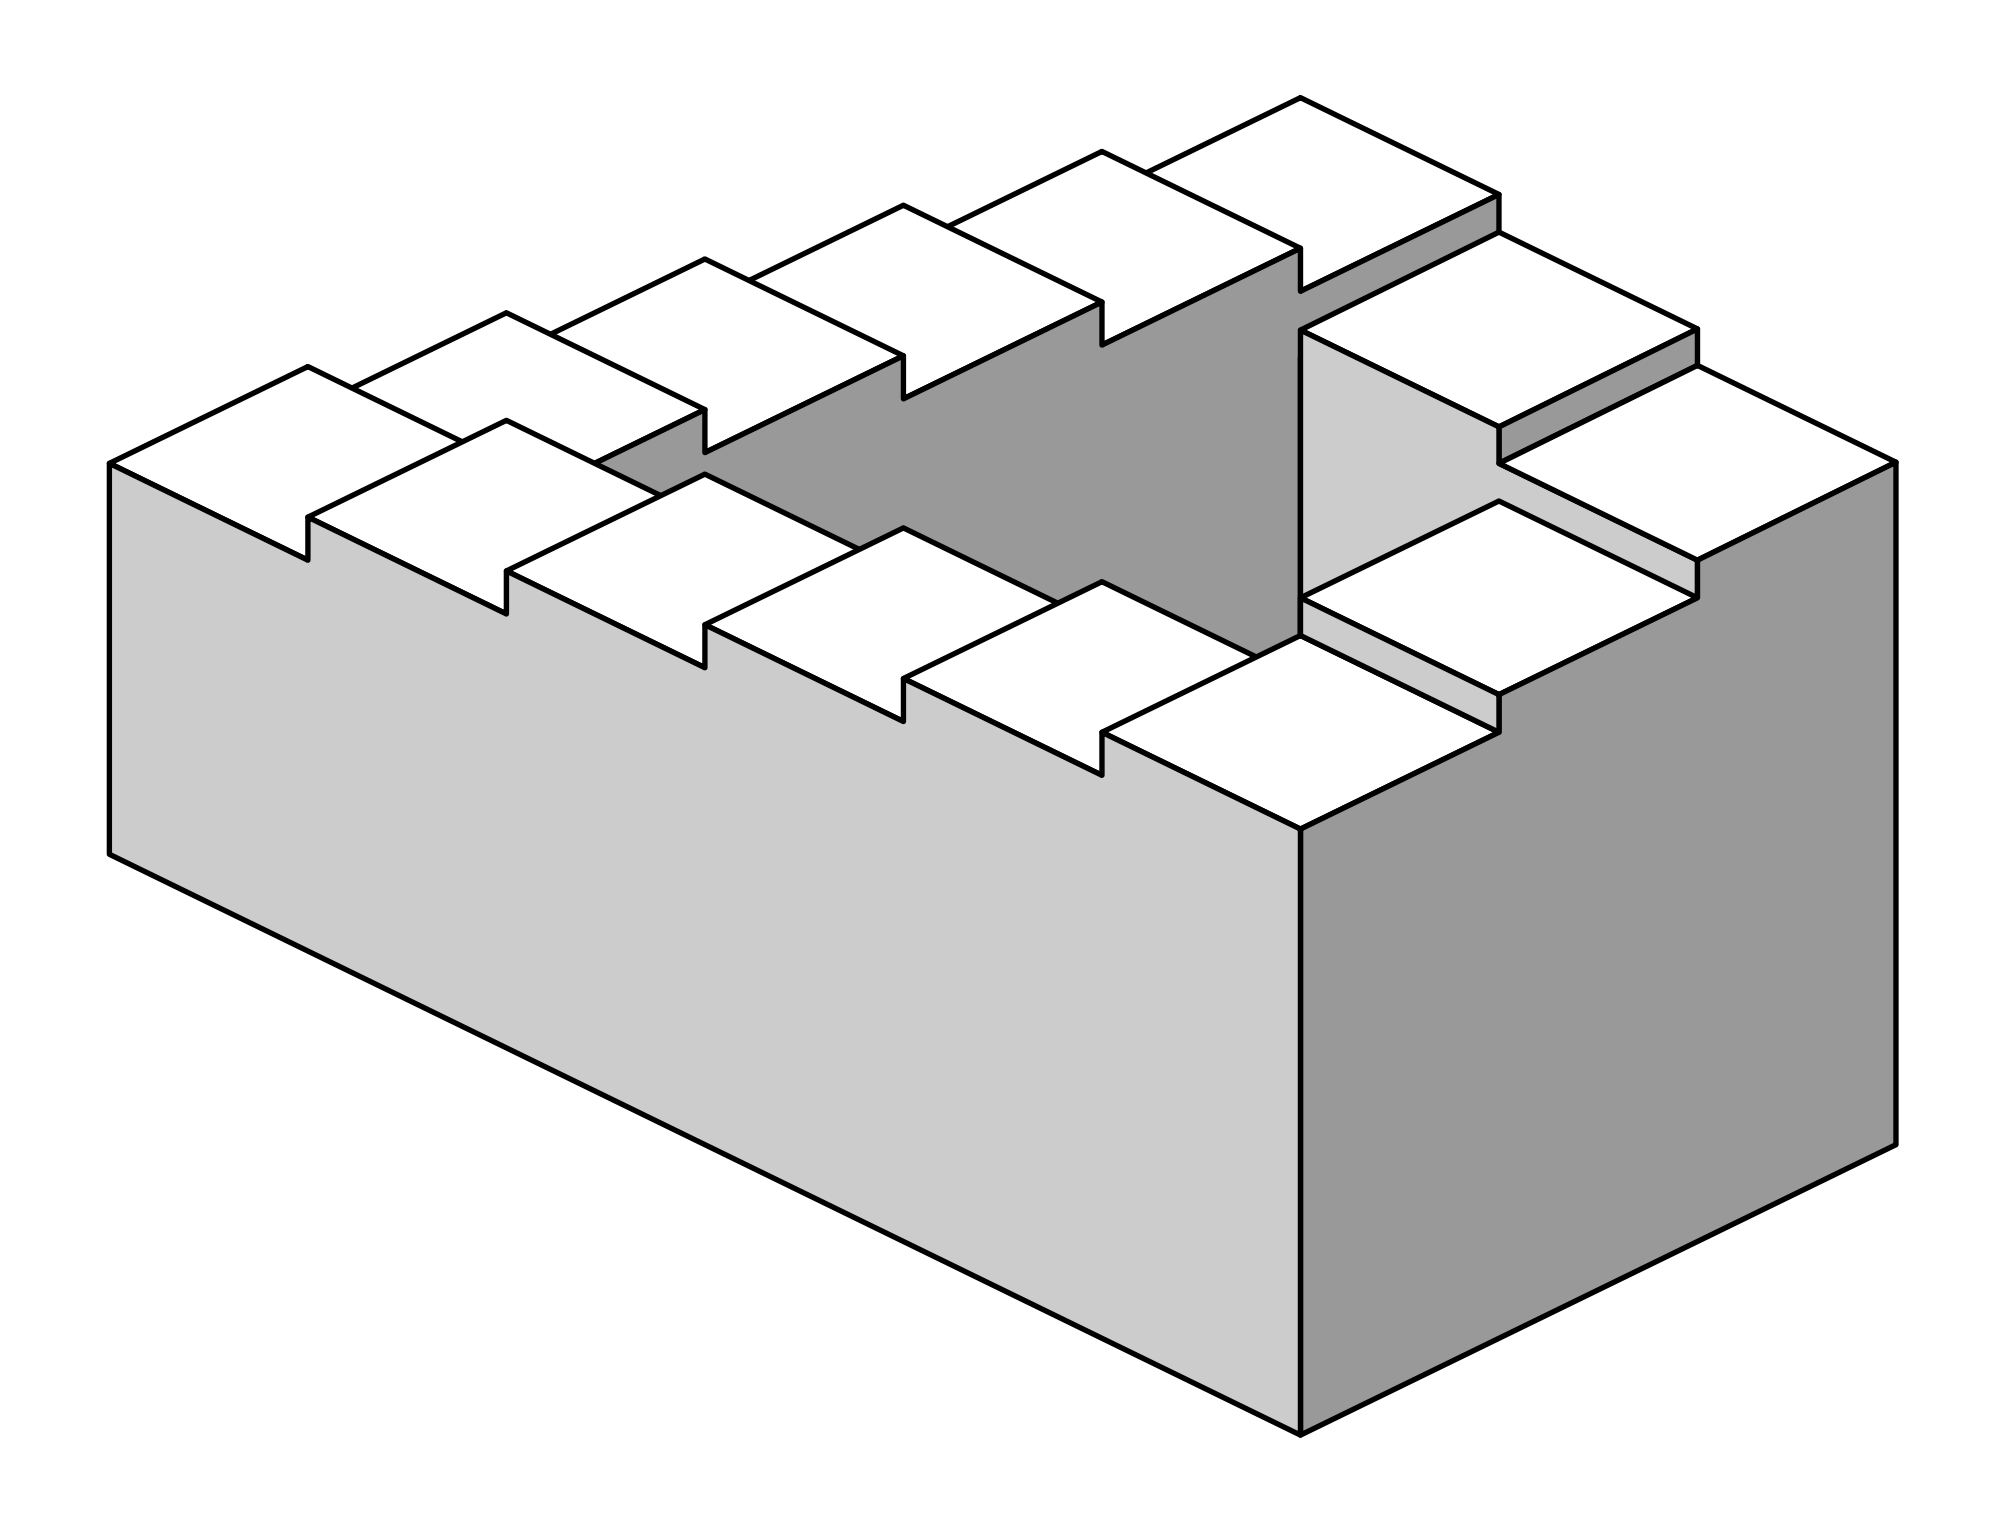 Drawing wall optical illusion. Penrose stairs wikipedia